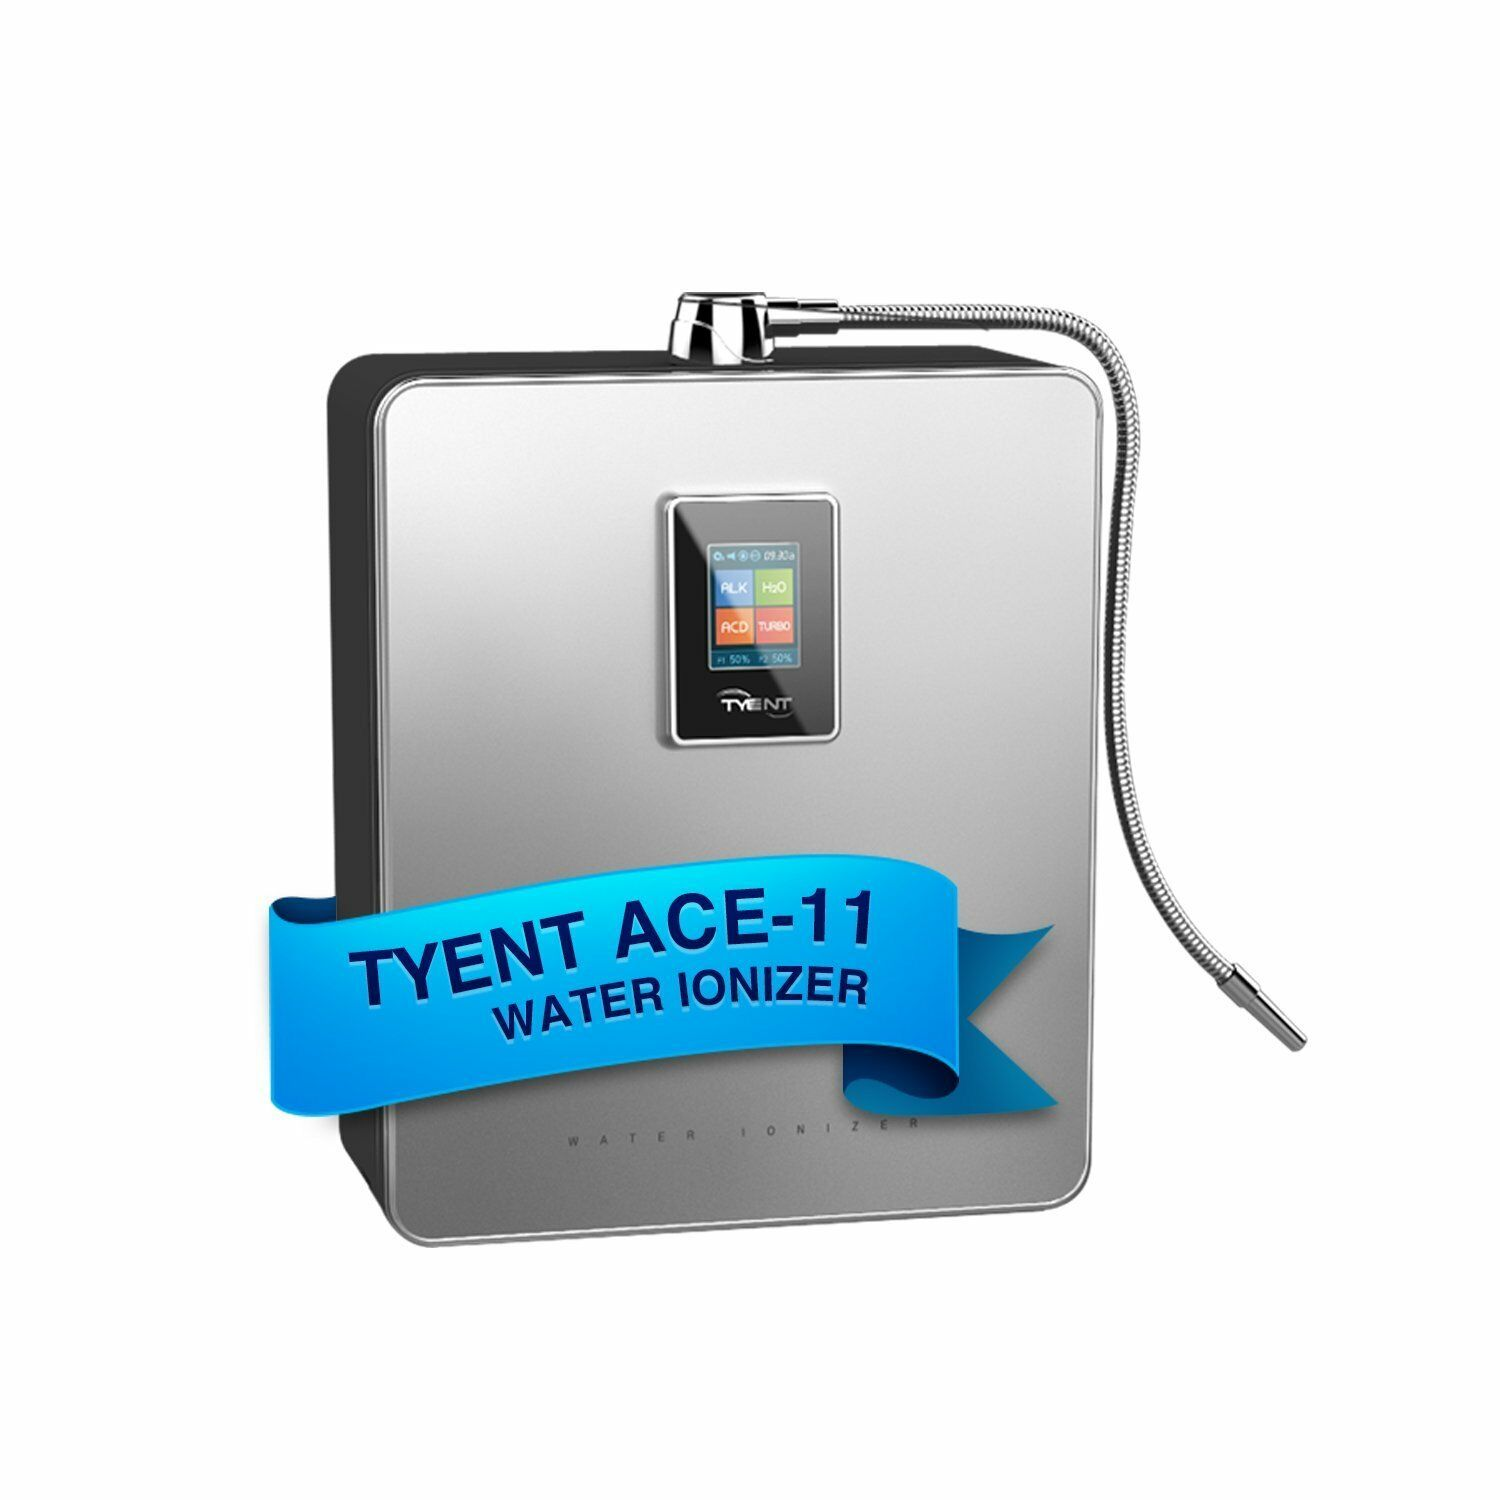 Tyent ACE-11 Turbo Extream Water Ionizer with Hydrogen Boost